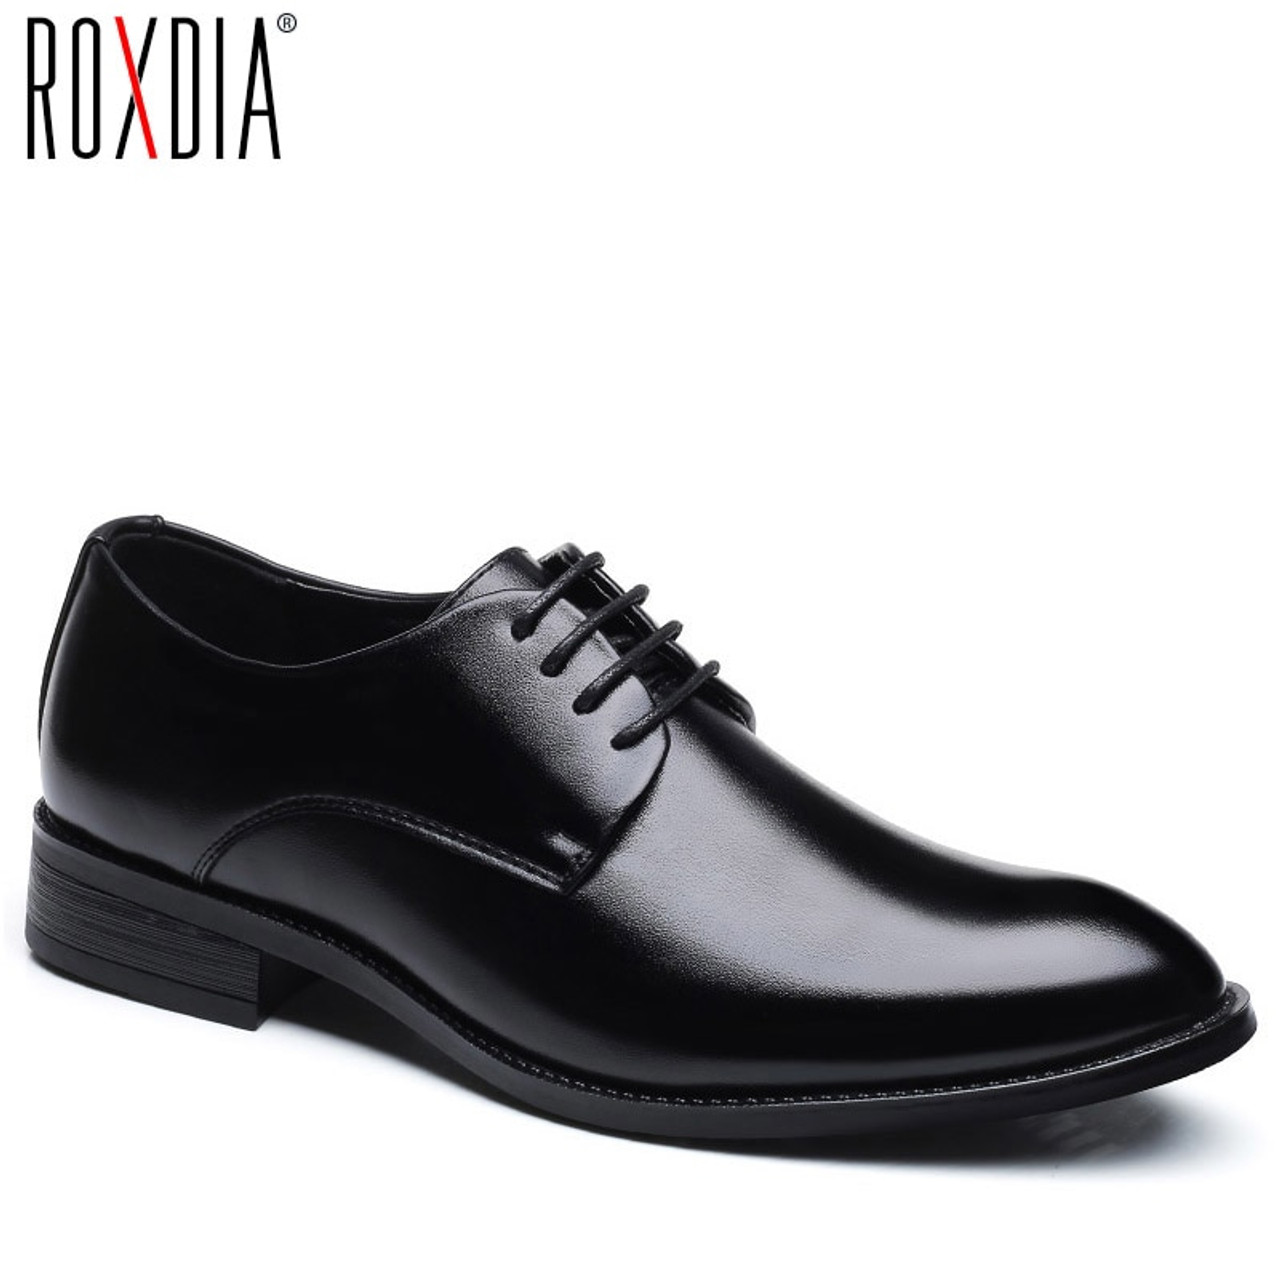 Mens Wedding Shoes.Roxdia Men Wedding Shoes Microfiber Leather Formal Business Pointed Toe For Man Dress Shoes Men S Oxford Flats Rxm081 Size 39 48